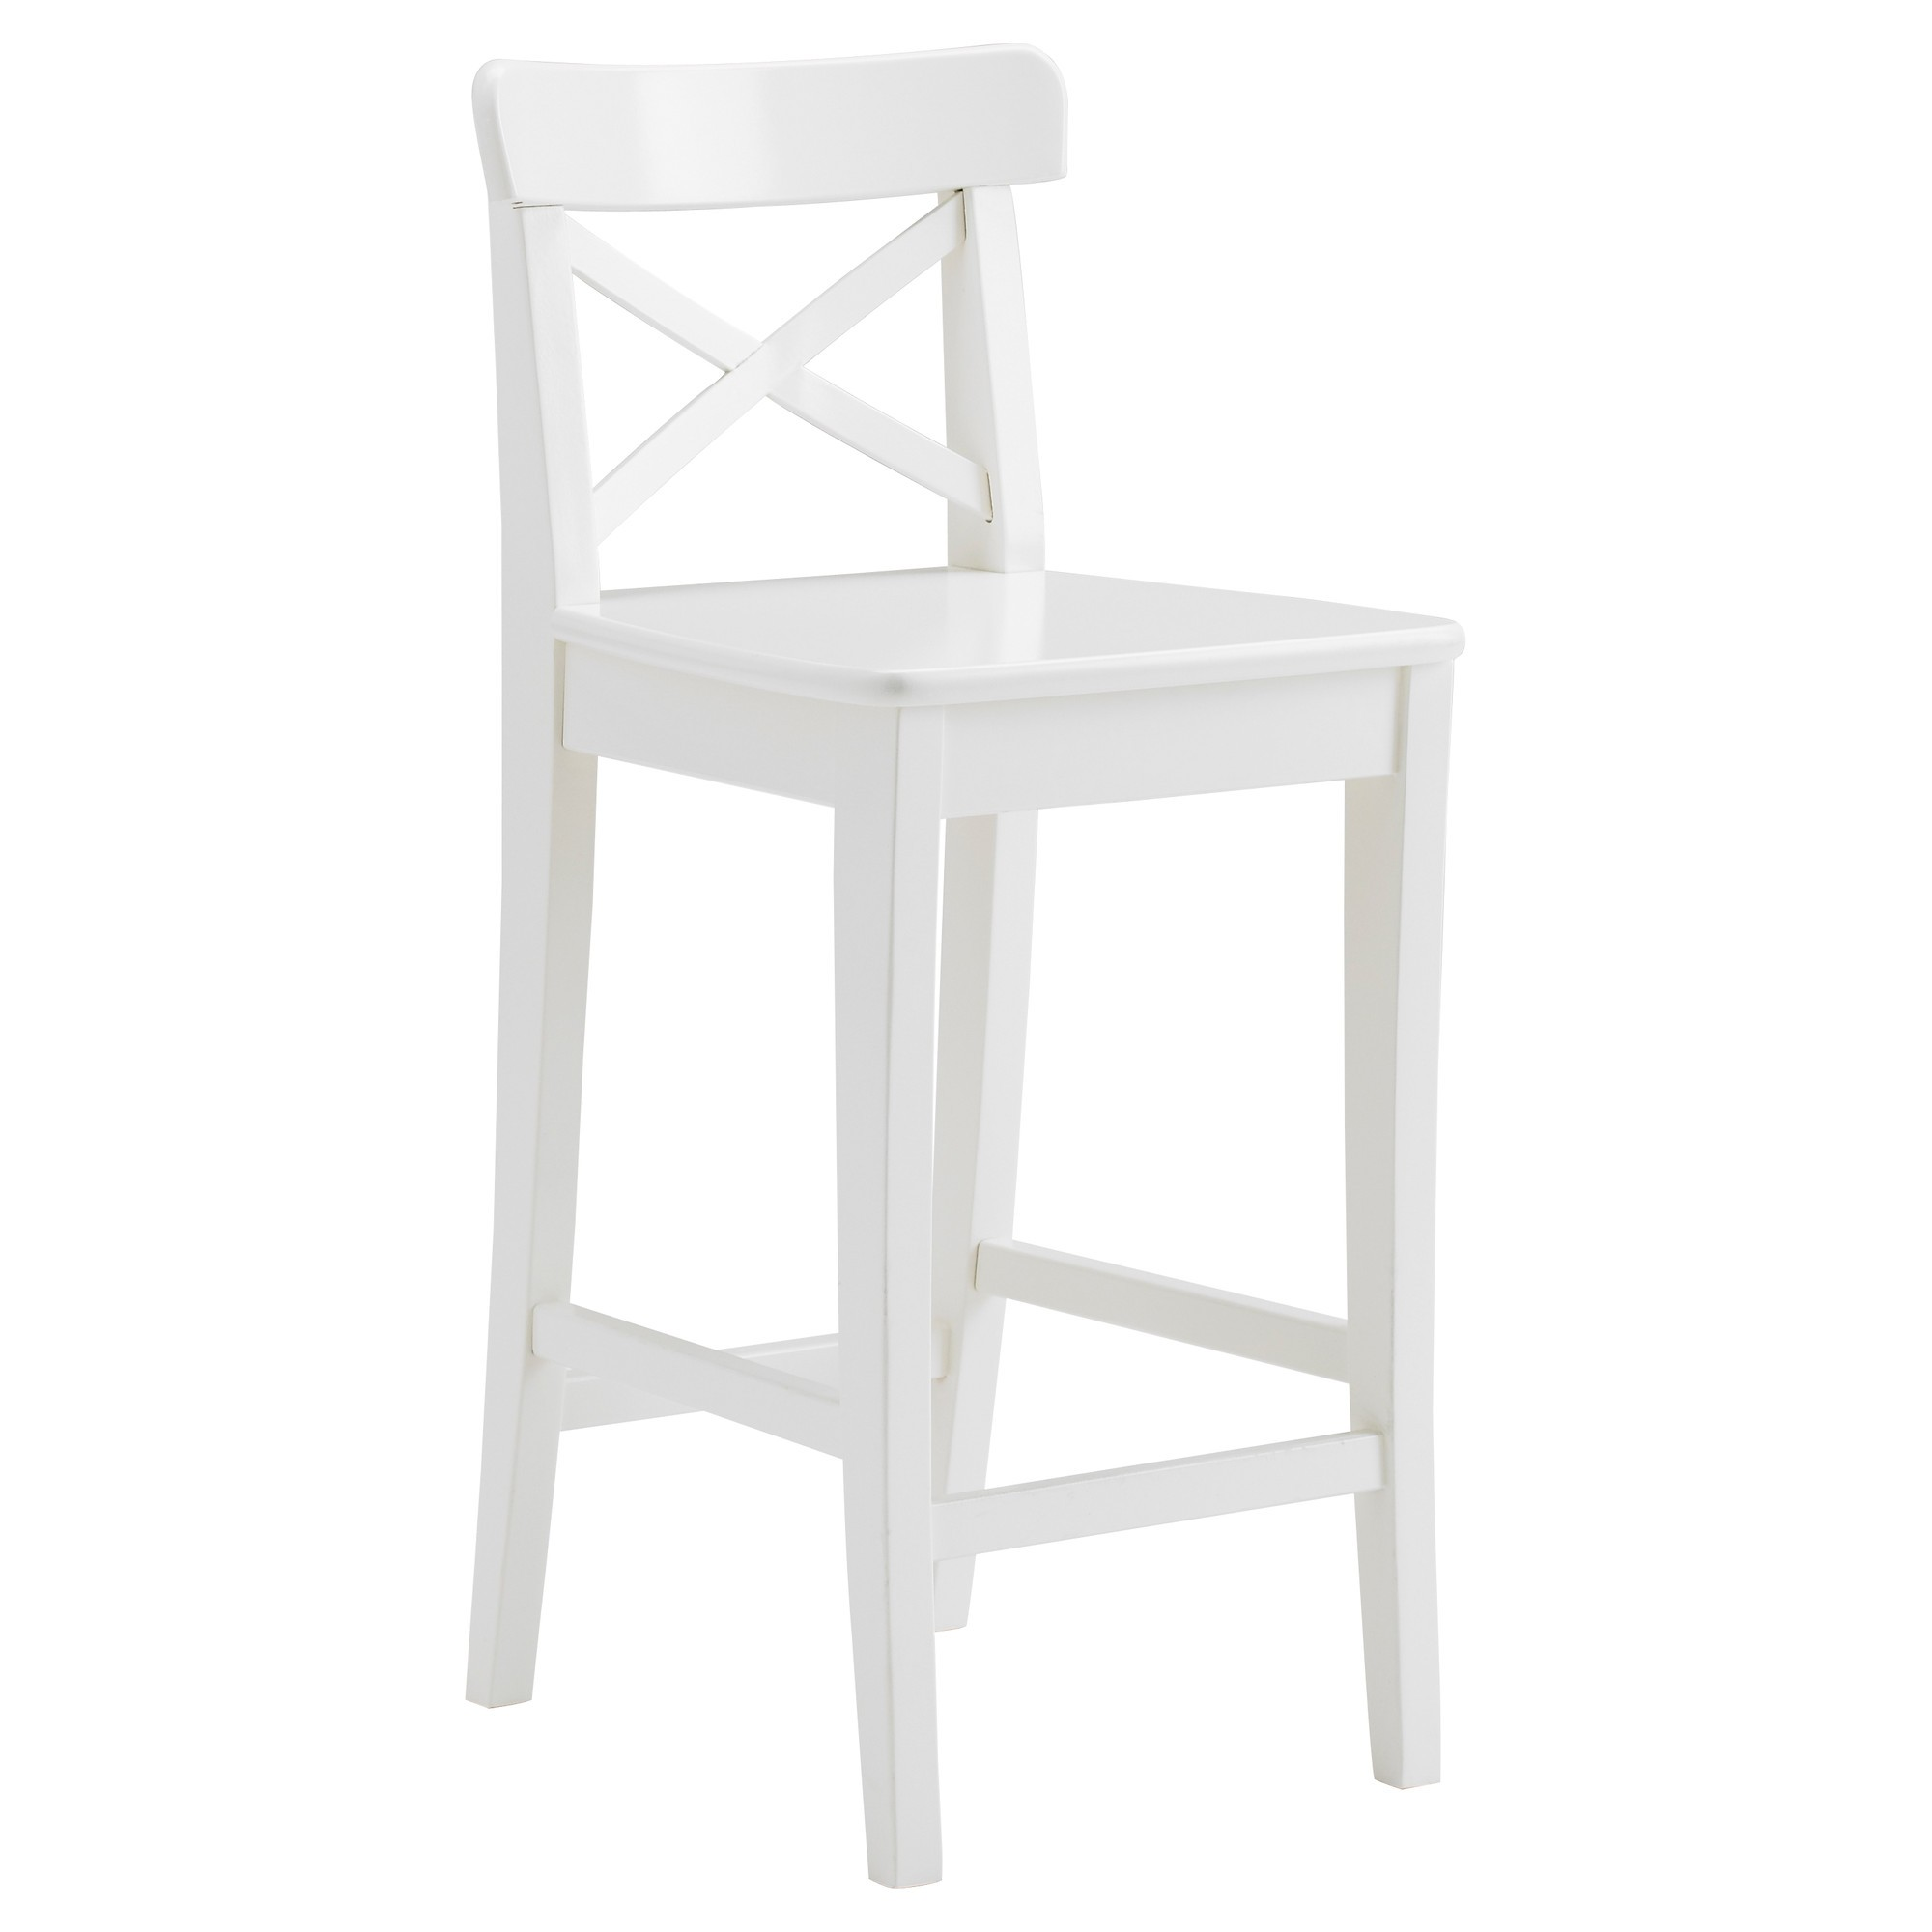 tabouret de bar leroy merlin tabouret haut de bar tourcoing papier inoui tabouret tolix blanc. Black Bedroom Furniture Sets. Home Design Ideas